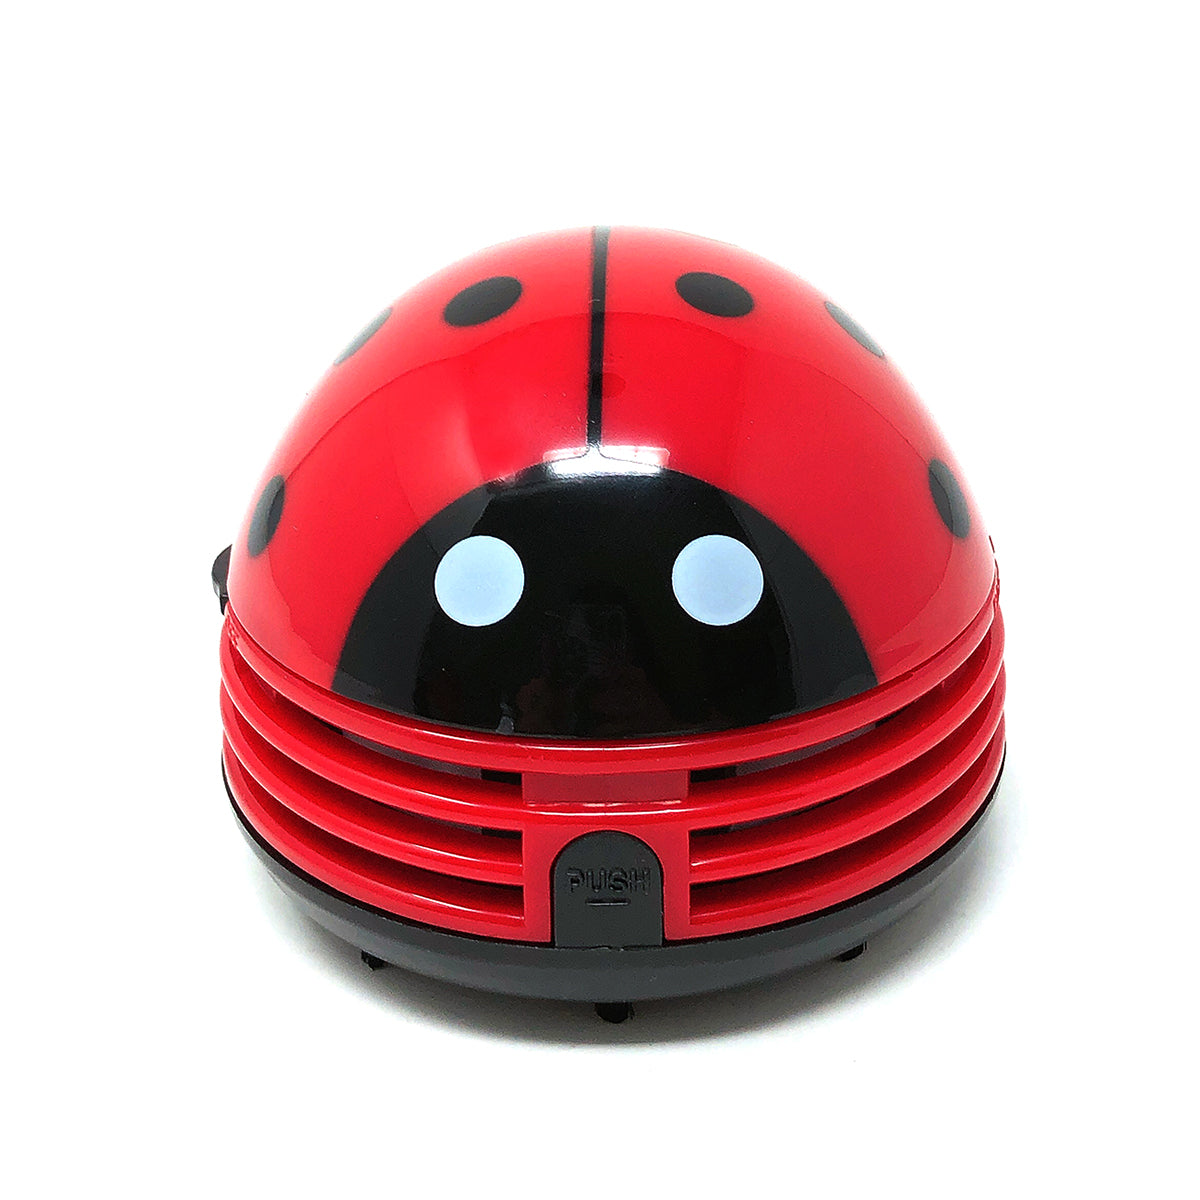 Wrapables Cute Portable Mini Vacuum Cleaner for Home and Office